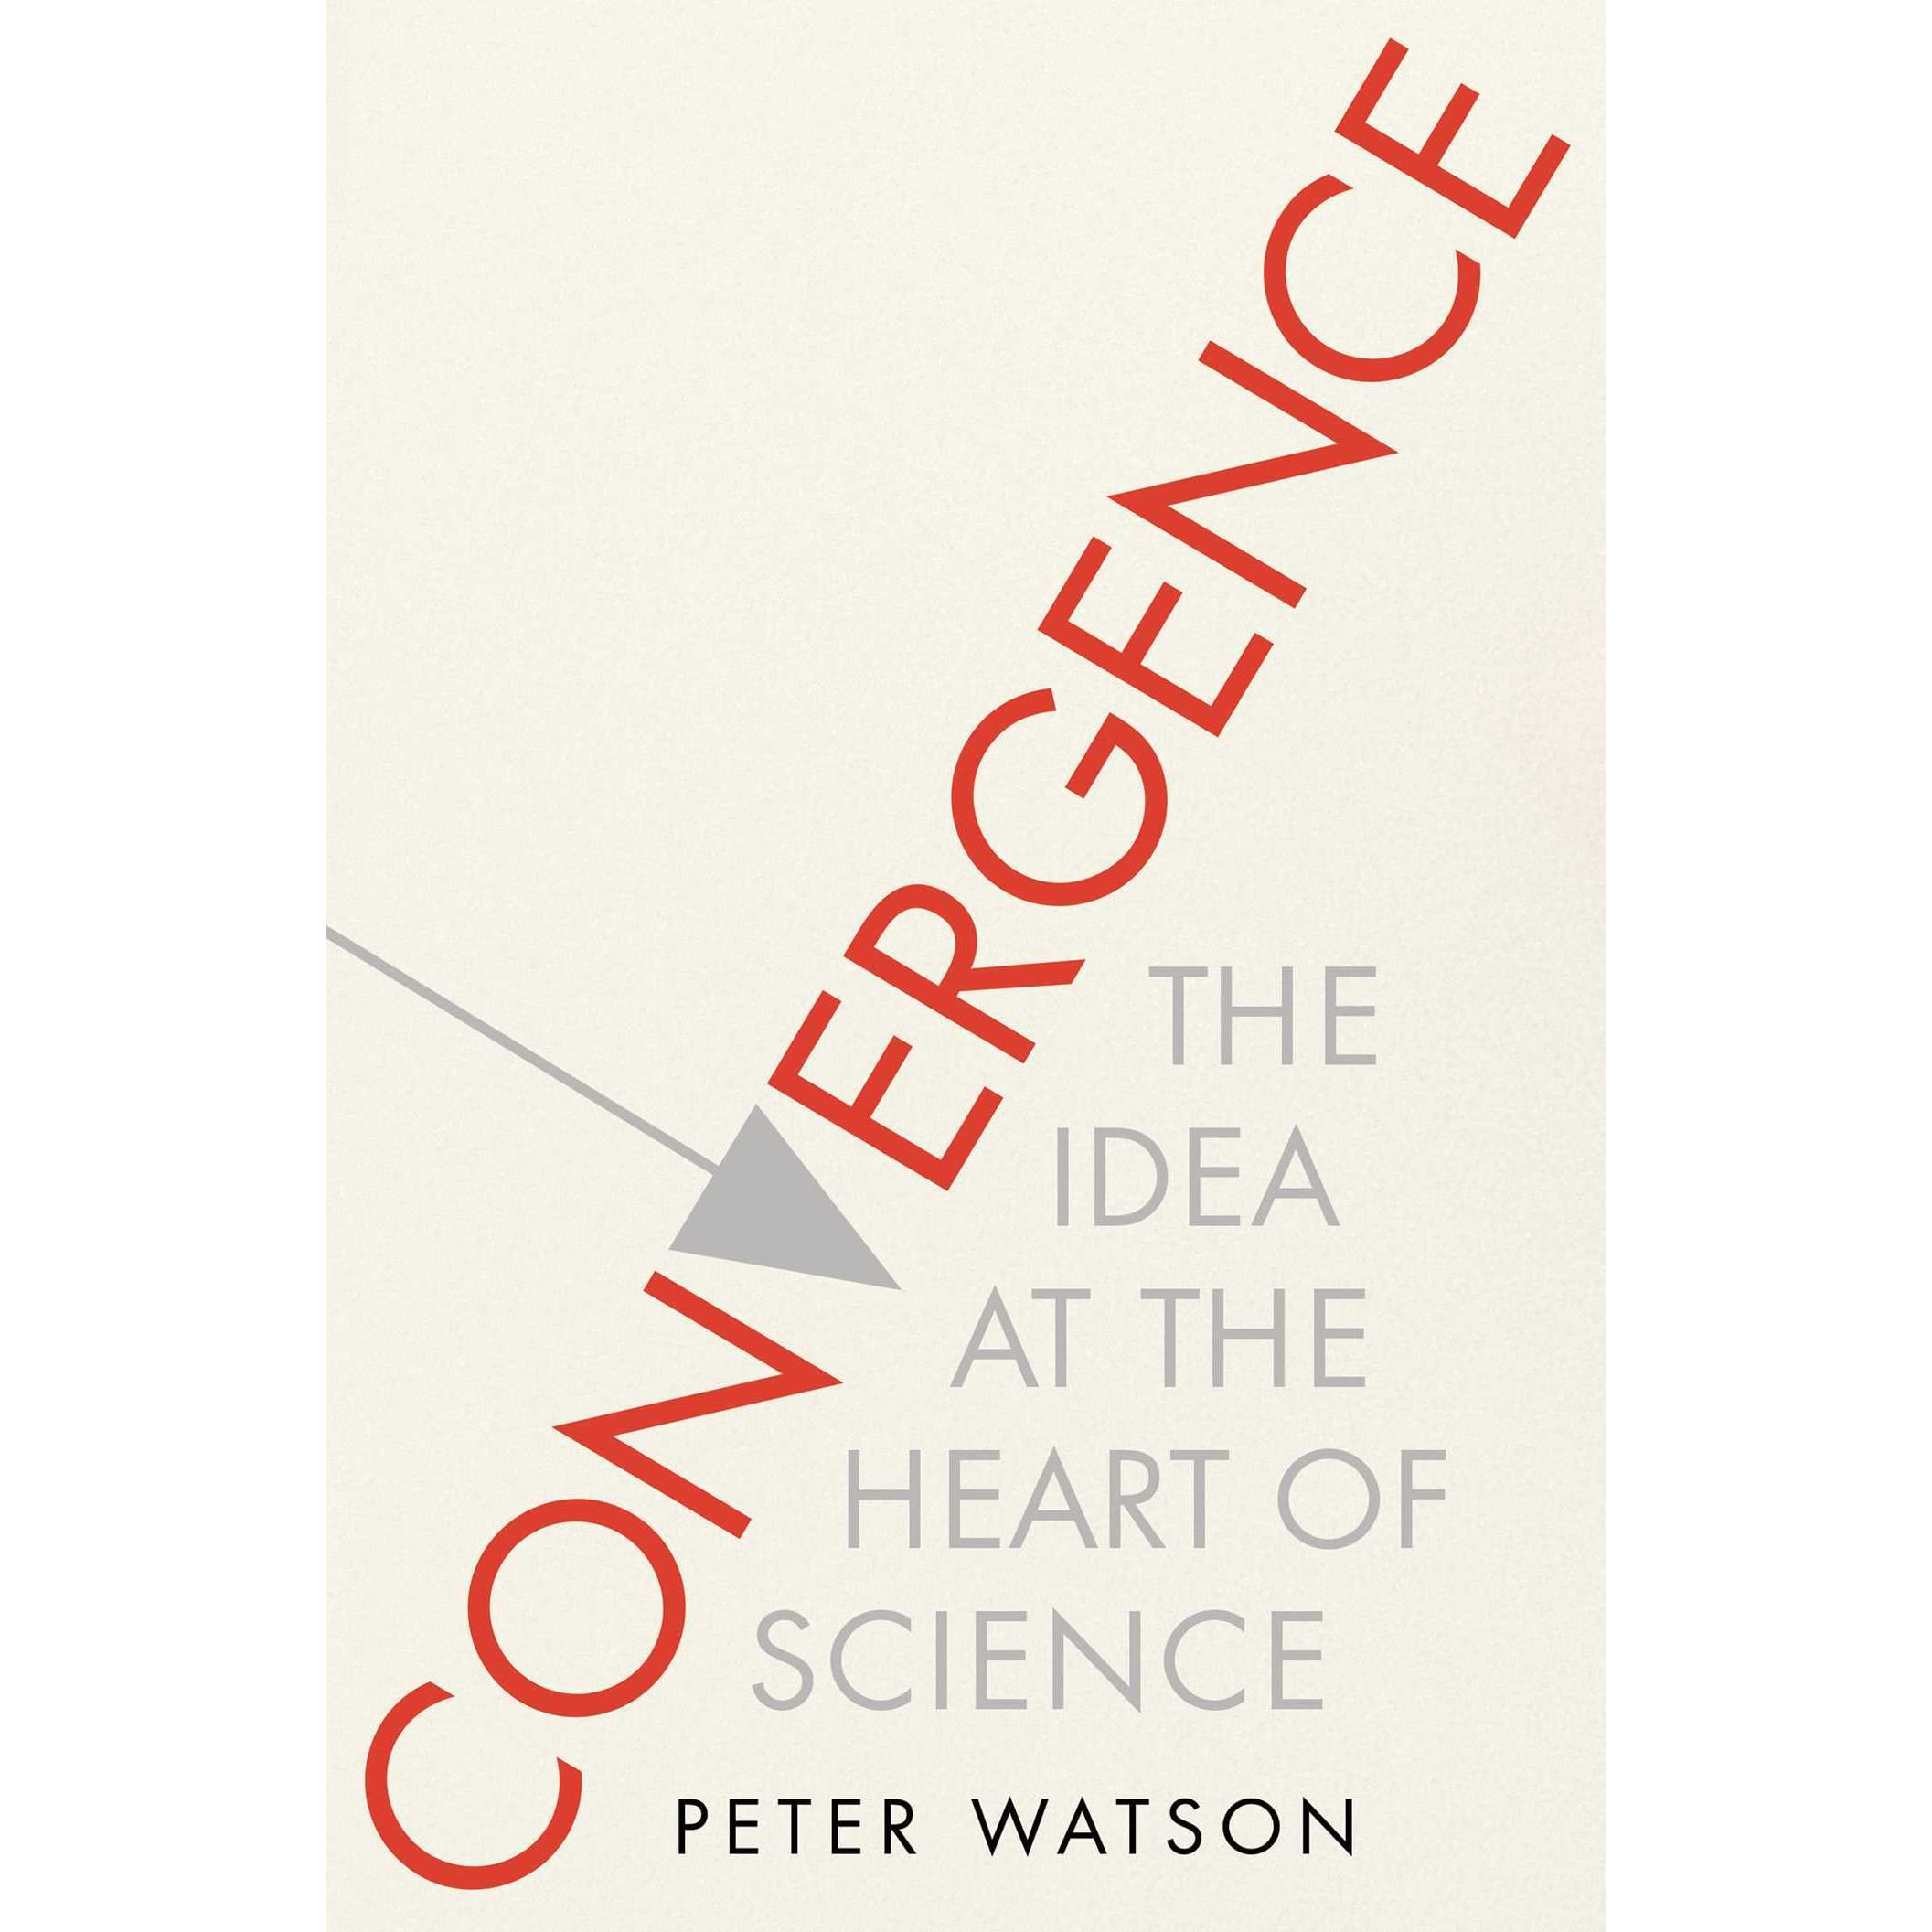 Convergence goodreads giveaways